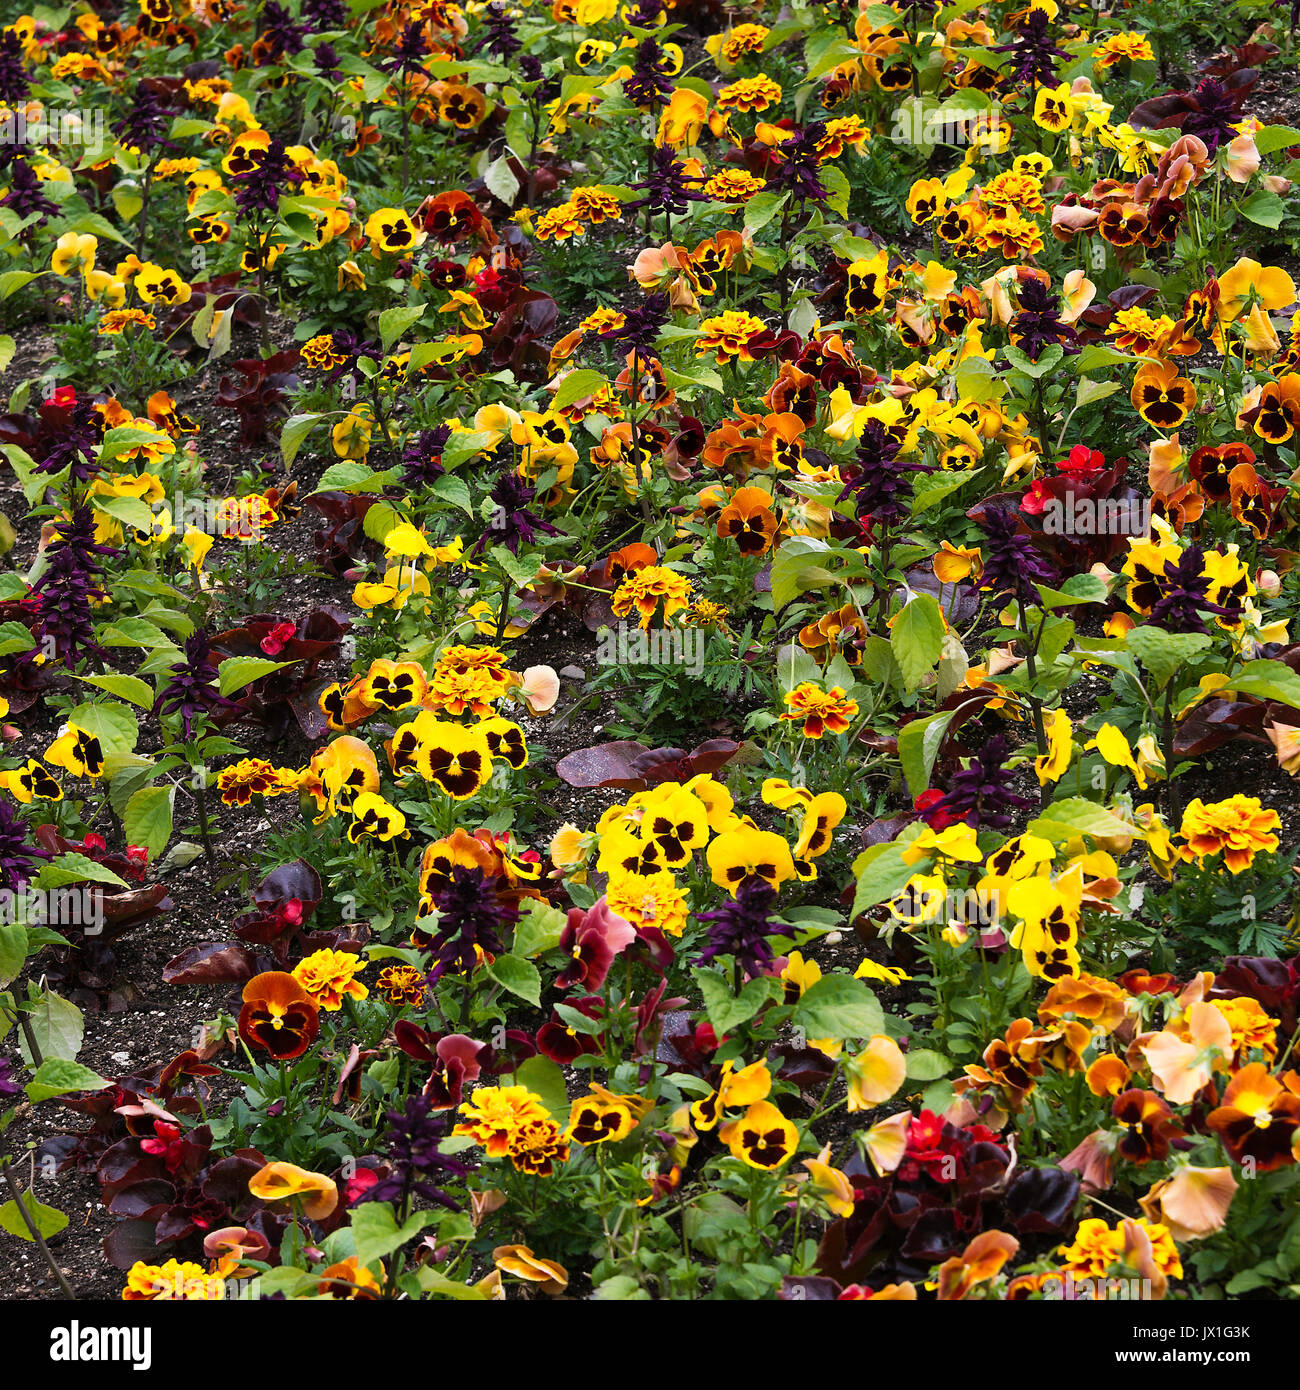 A Beautiful Display of Colourful Pansy Flowers in Full Bloom at Butchart Gardens Victoria Vancouver Island British Columbia Canada - Stock Image